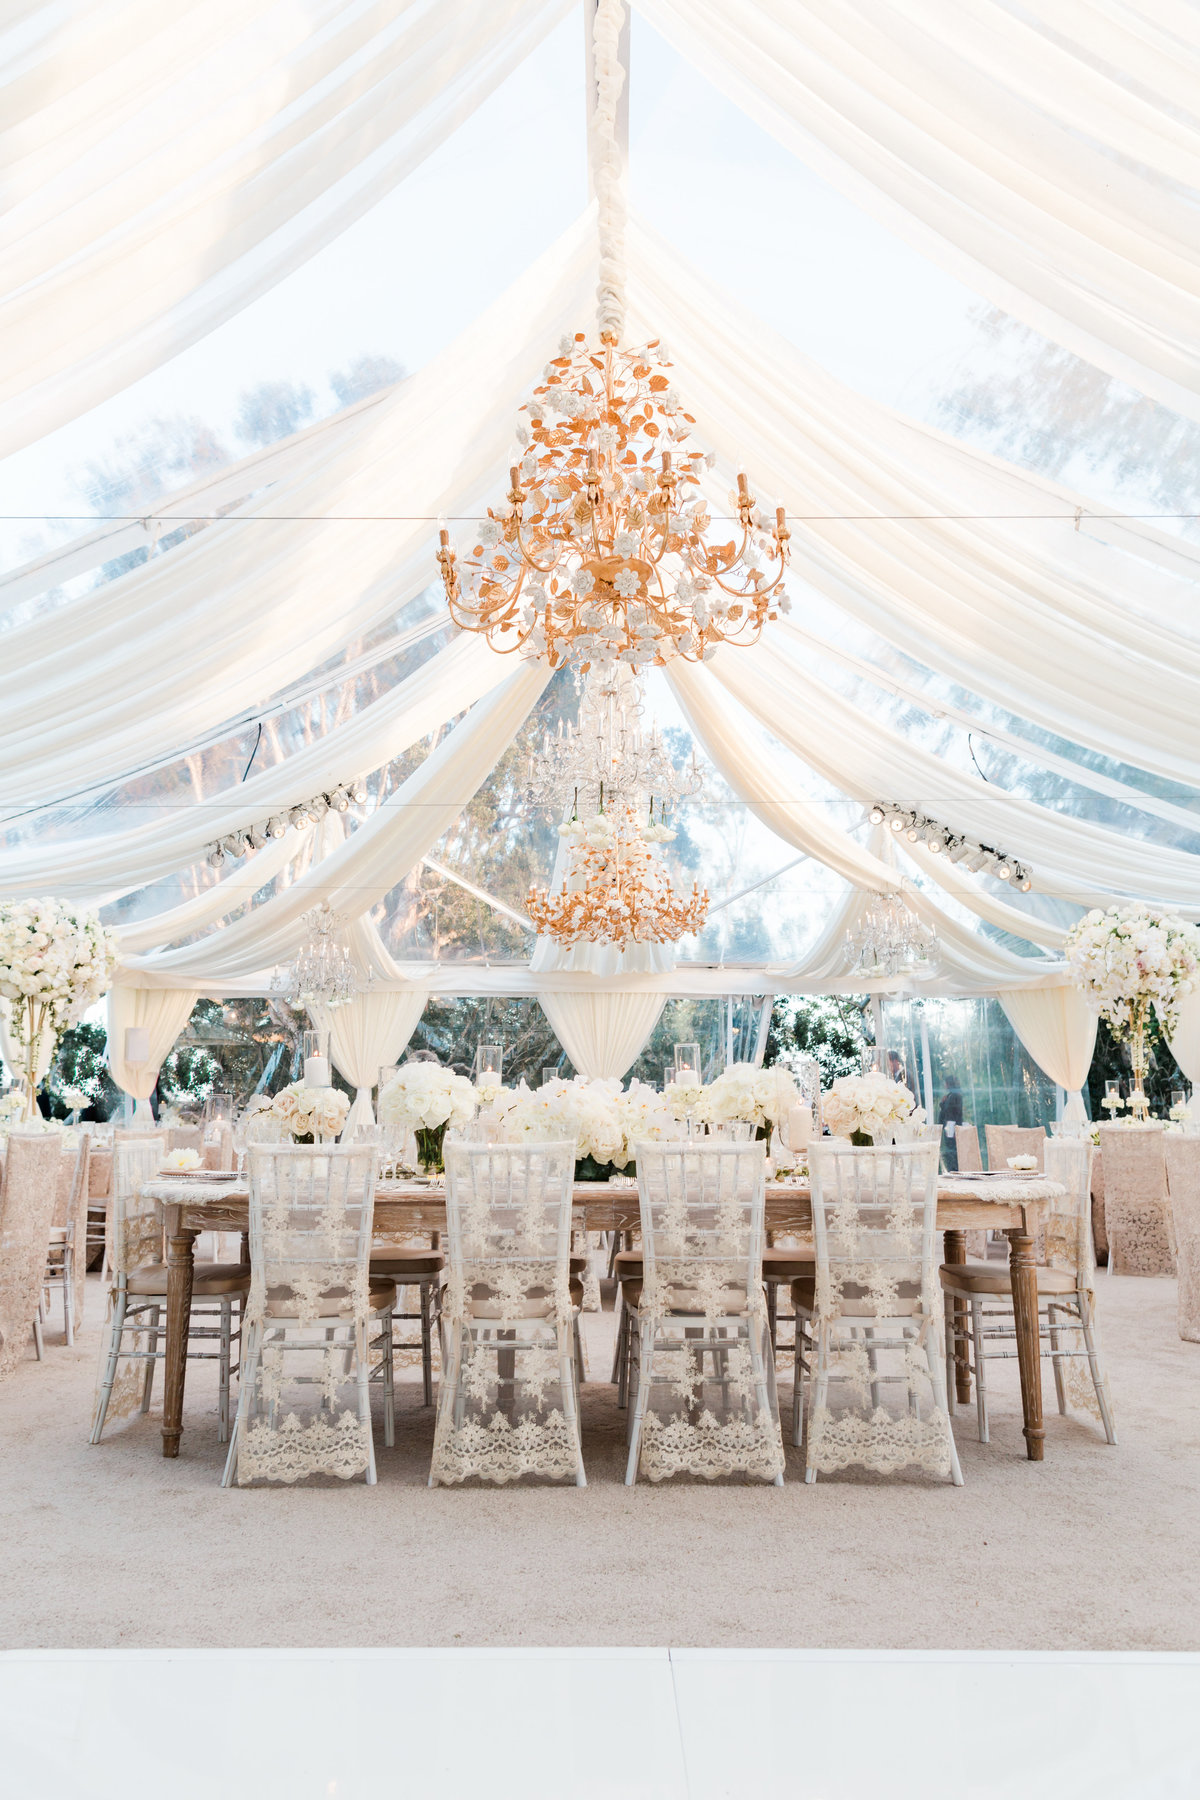 Malibu Private Estate Wedding_Valorie Darling Photography_0E1A8341-2